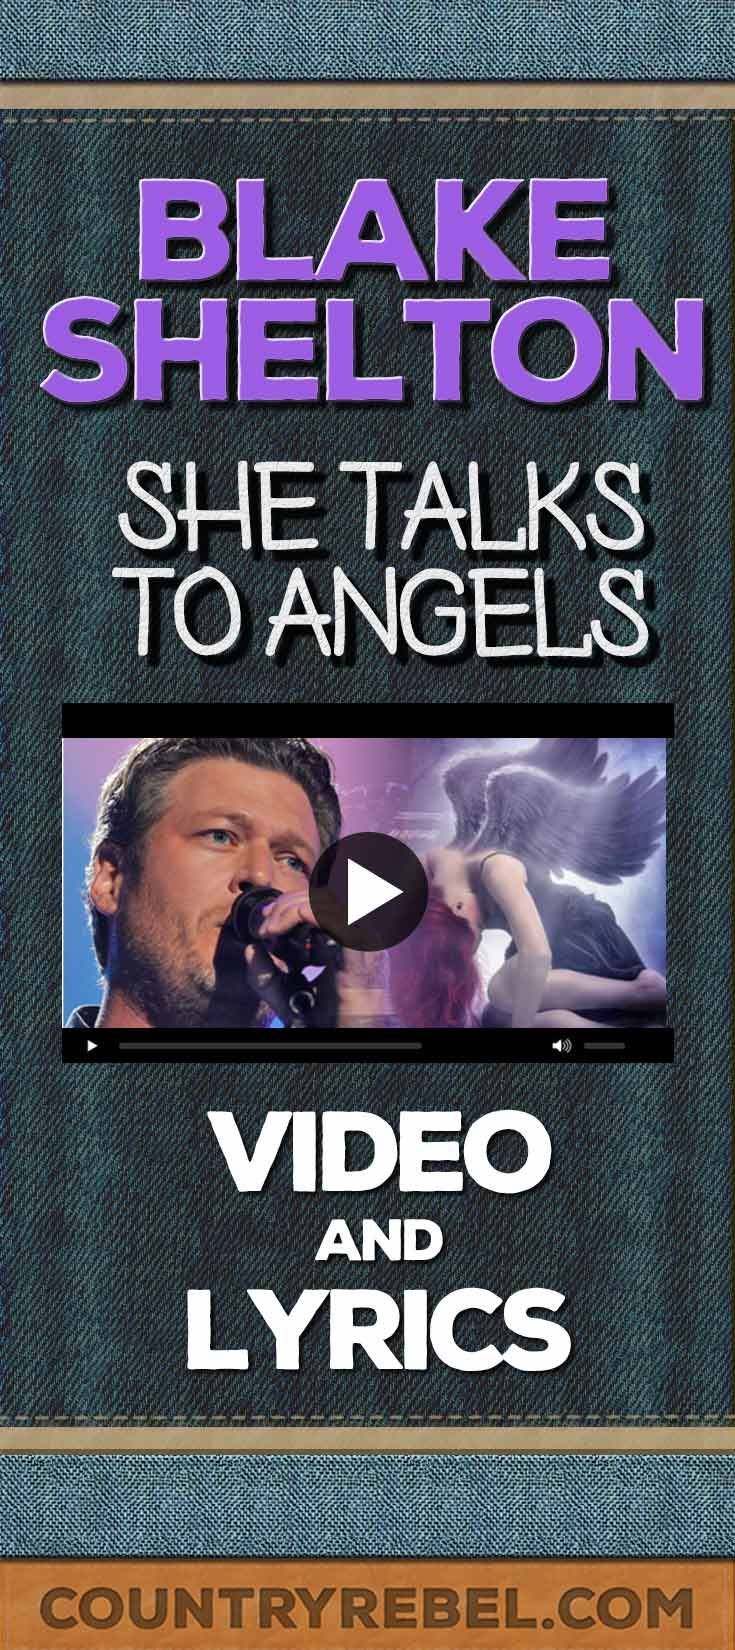 Country Music Songs - Blake Shelton - She Talks To Angels Lyrics and Country Music Video http://countryrebel.com/blogs/videos/18268967-blake-shelton-she-talks-to-angels-watch?a=ww&var=BlakeSheltonAngels-PINTEREST